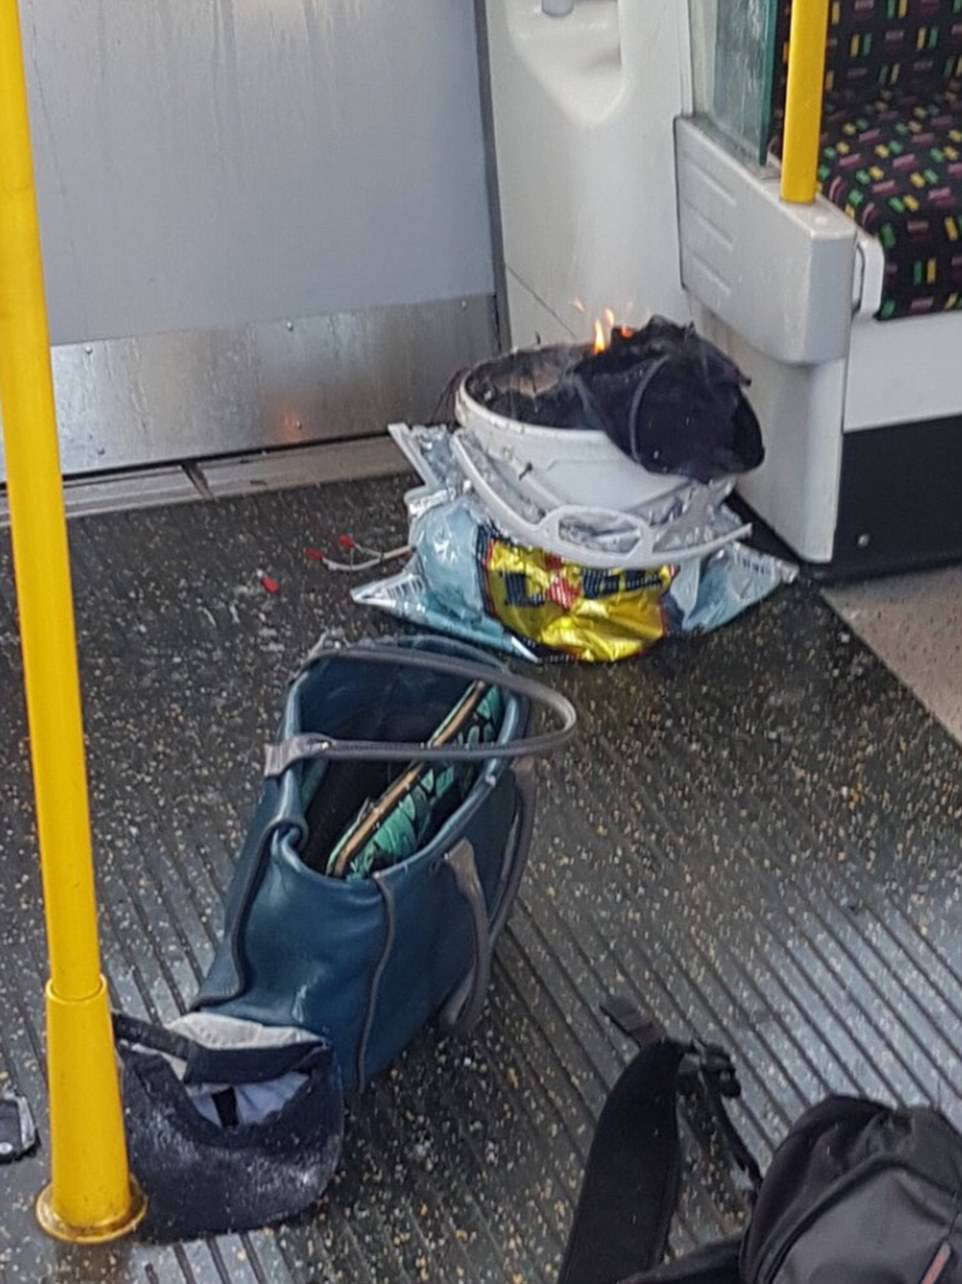 Photographs on social media show a bucket alight on the underground train and hidden inside a Lidl cool bag